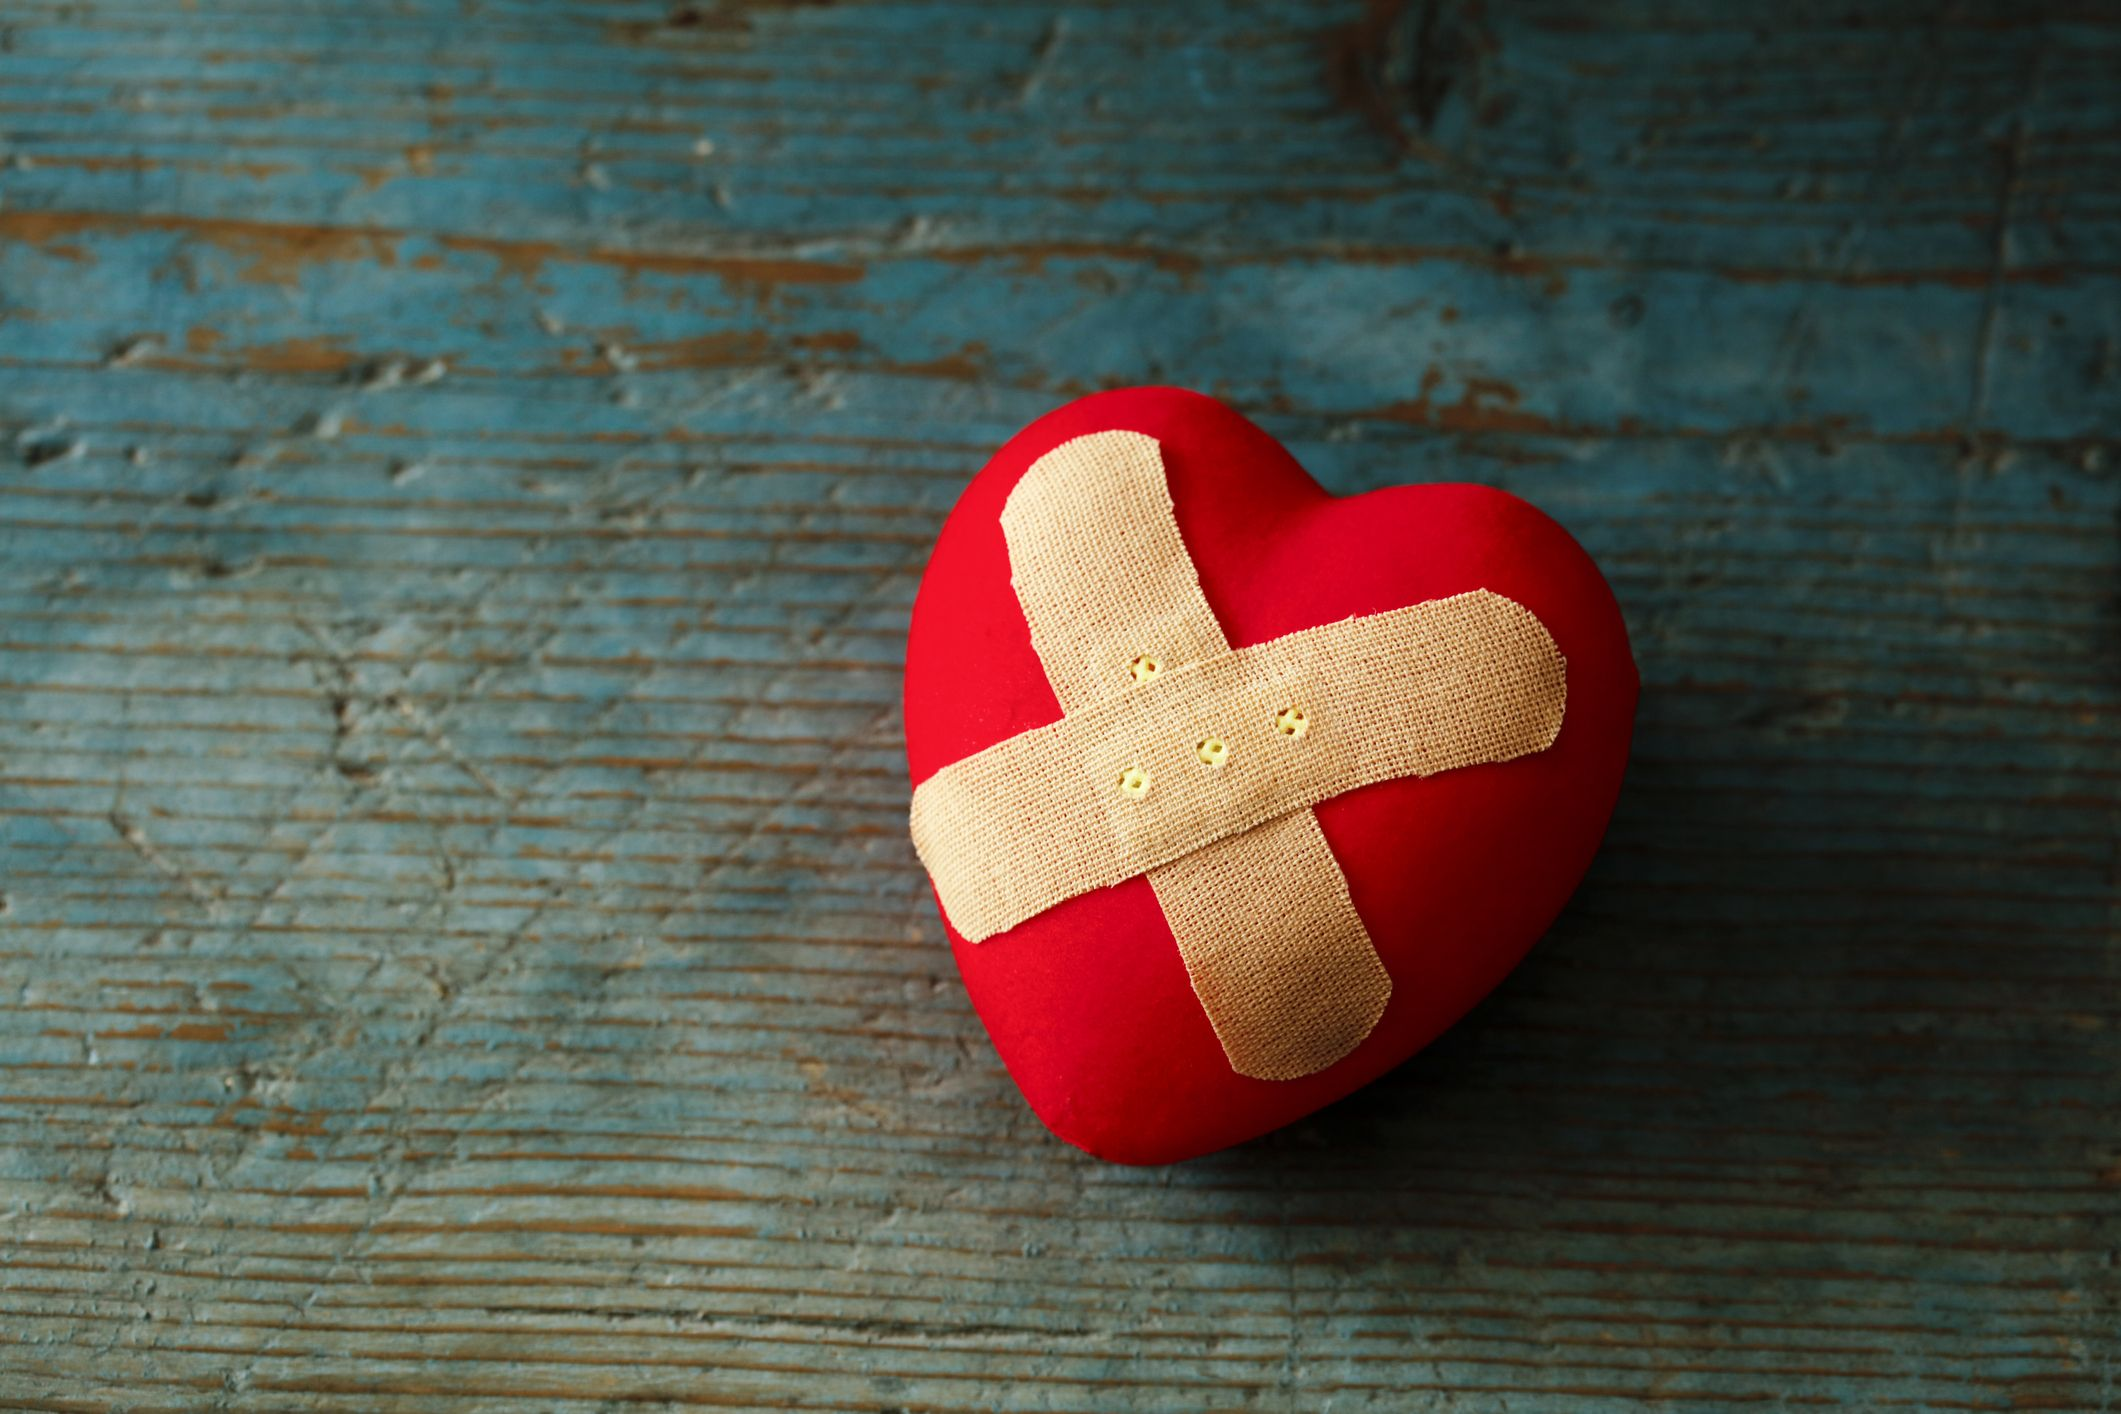 The Power of Empathy: More than a Band-Aid for the Heart